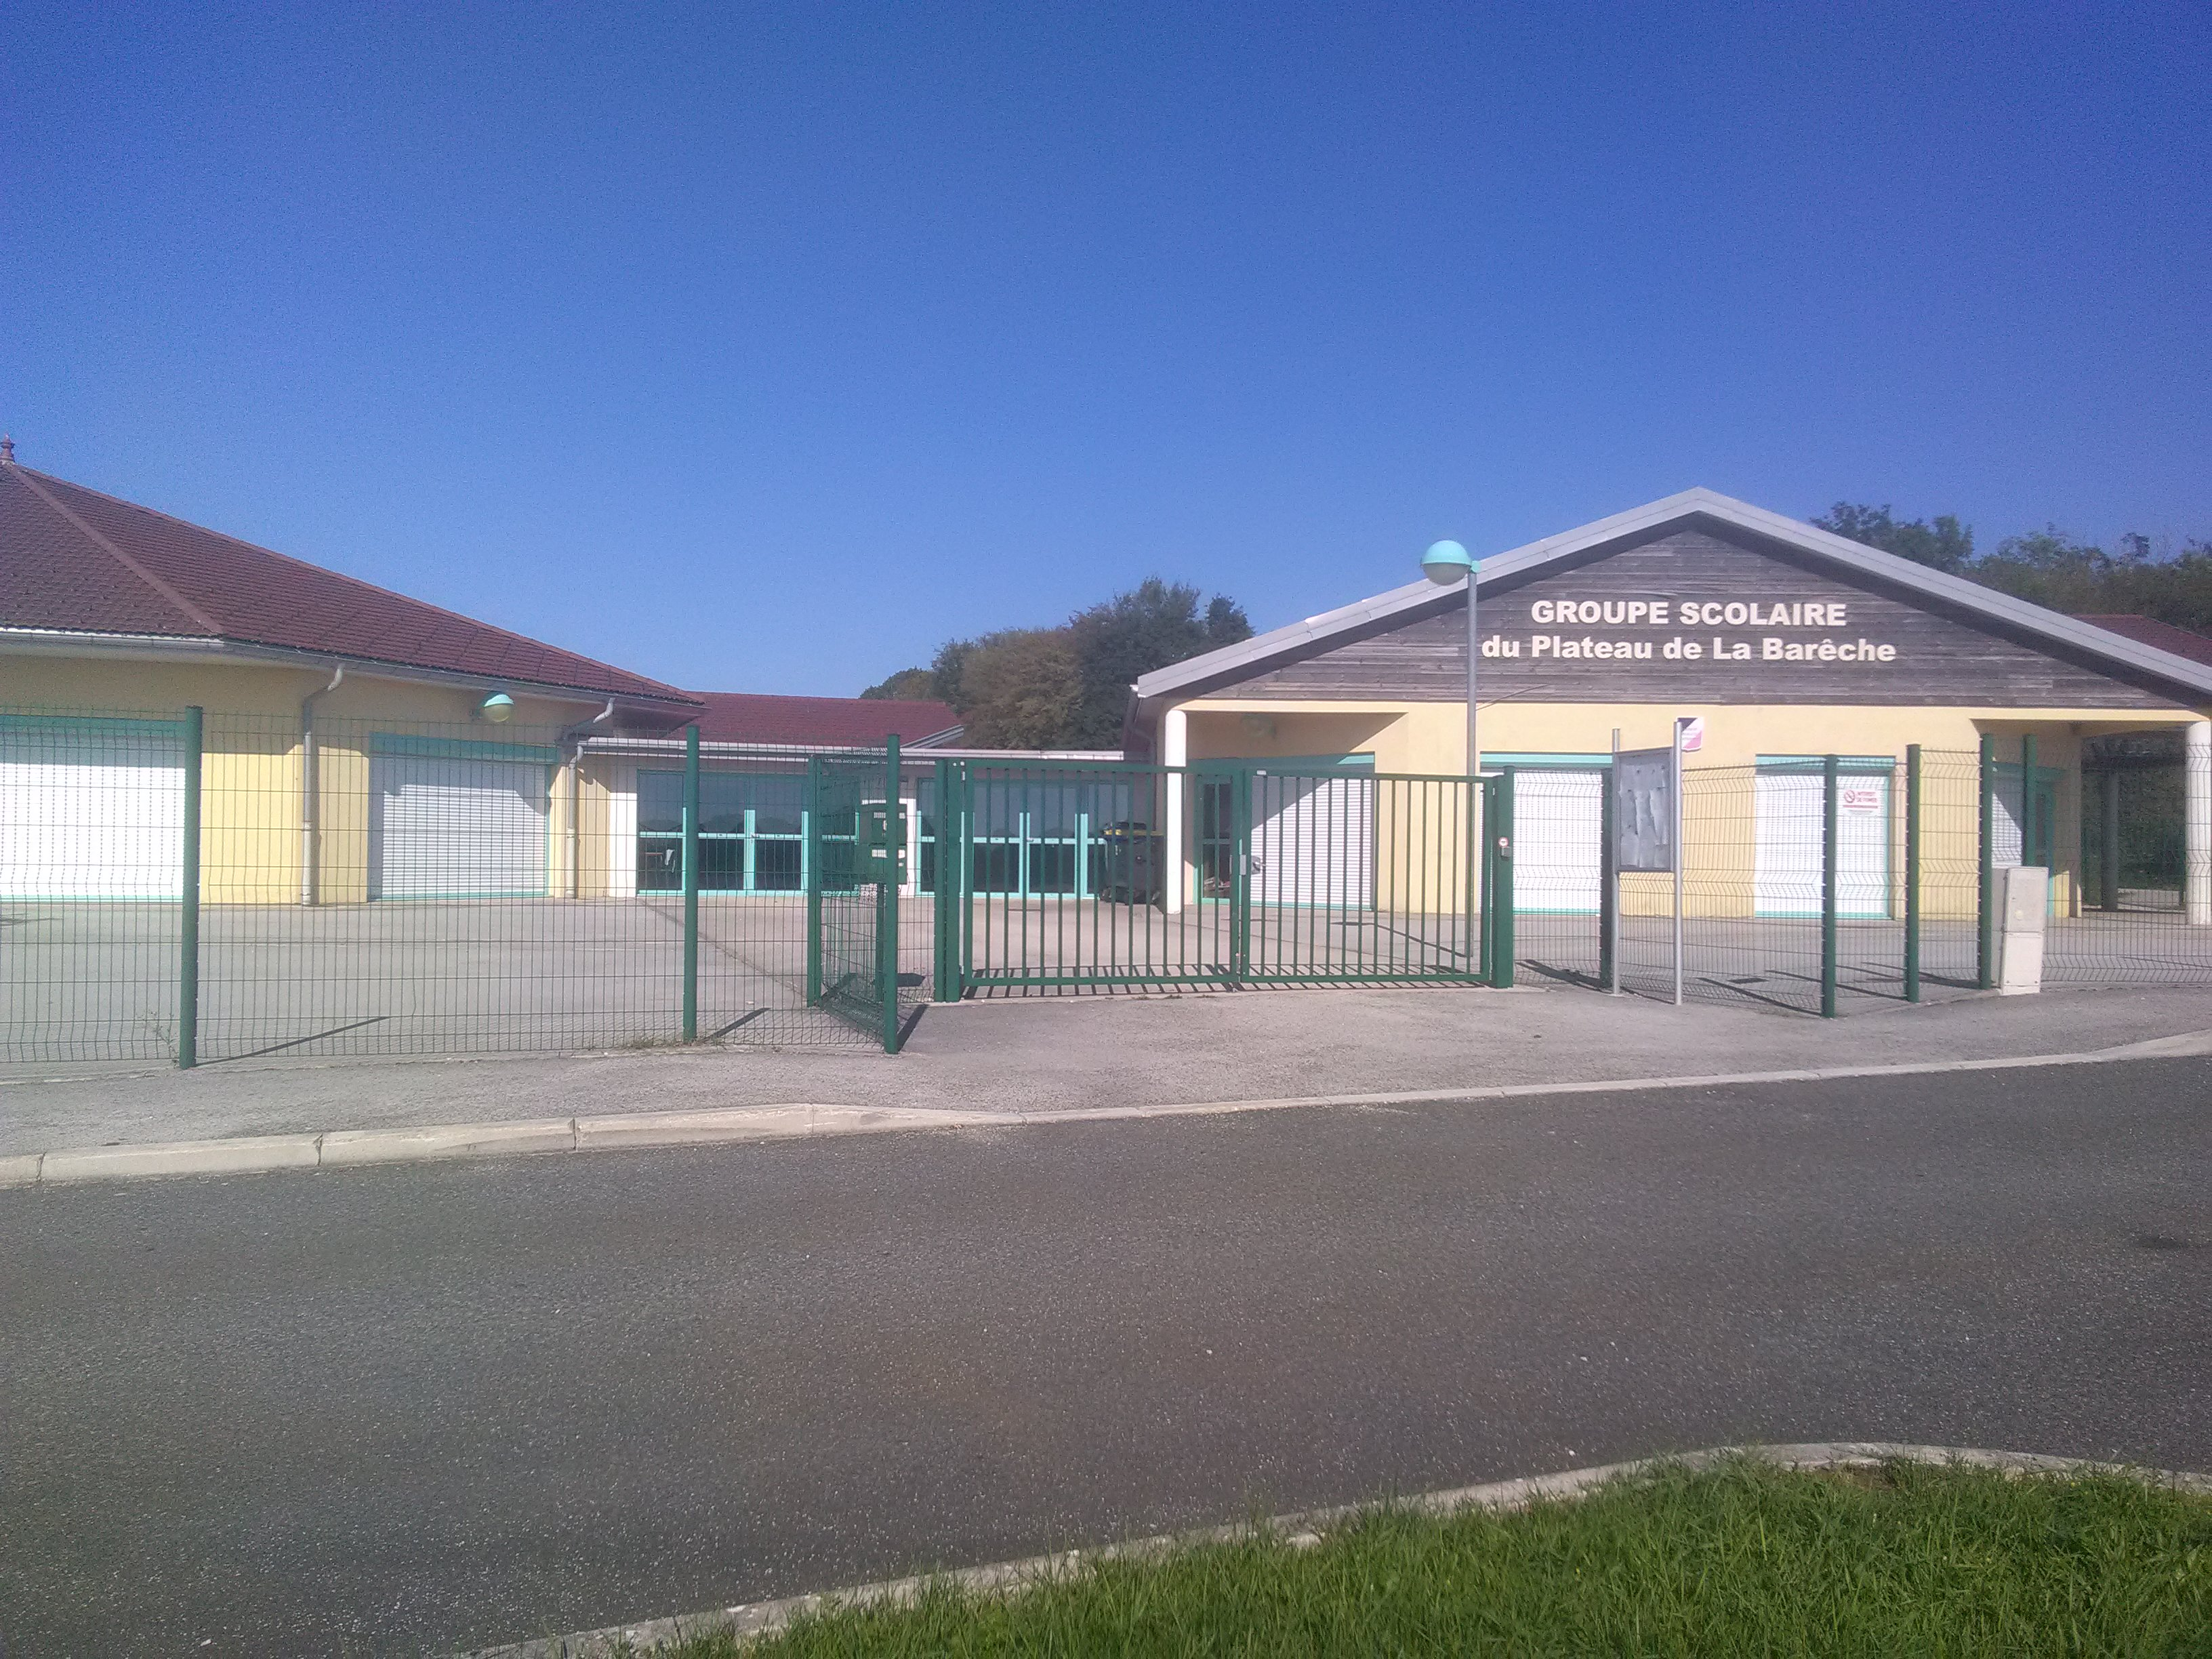 Groupe scolaire 2.jpg